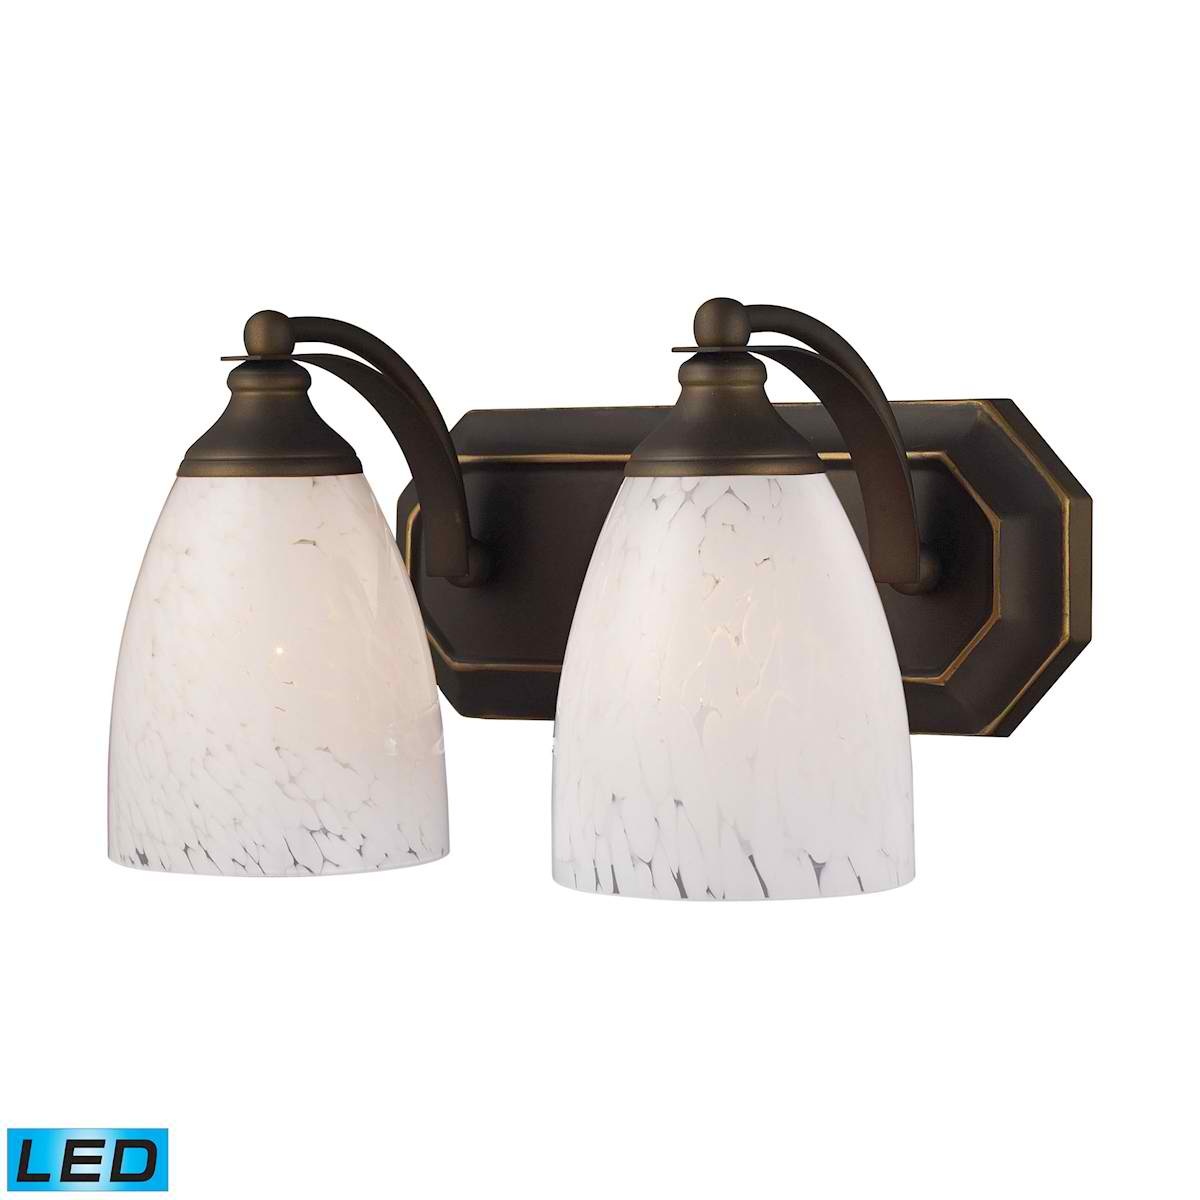 2 Light Vanity in Aged Bronze and Snow White Glass - LED, 800 Lumens (1600 Lumens Total) with Full Scale